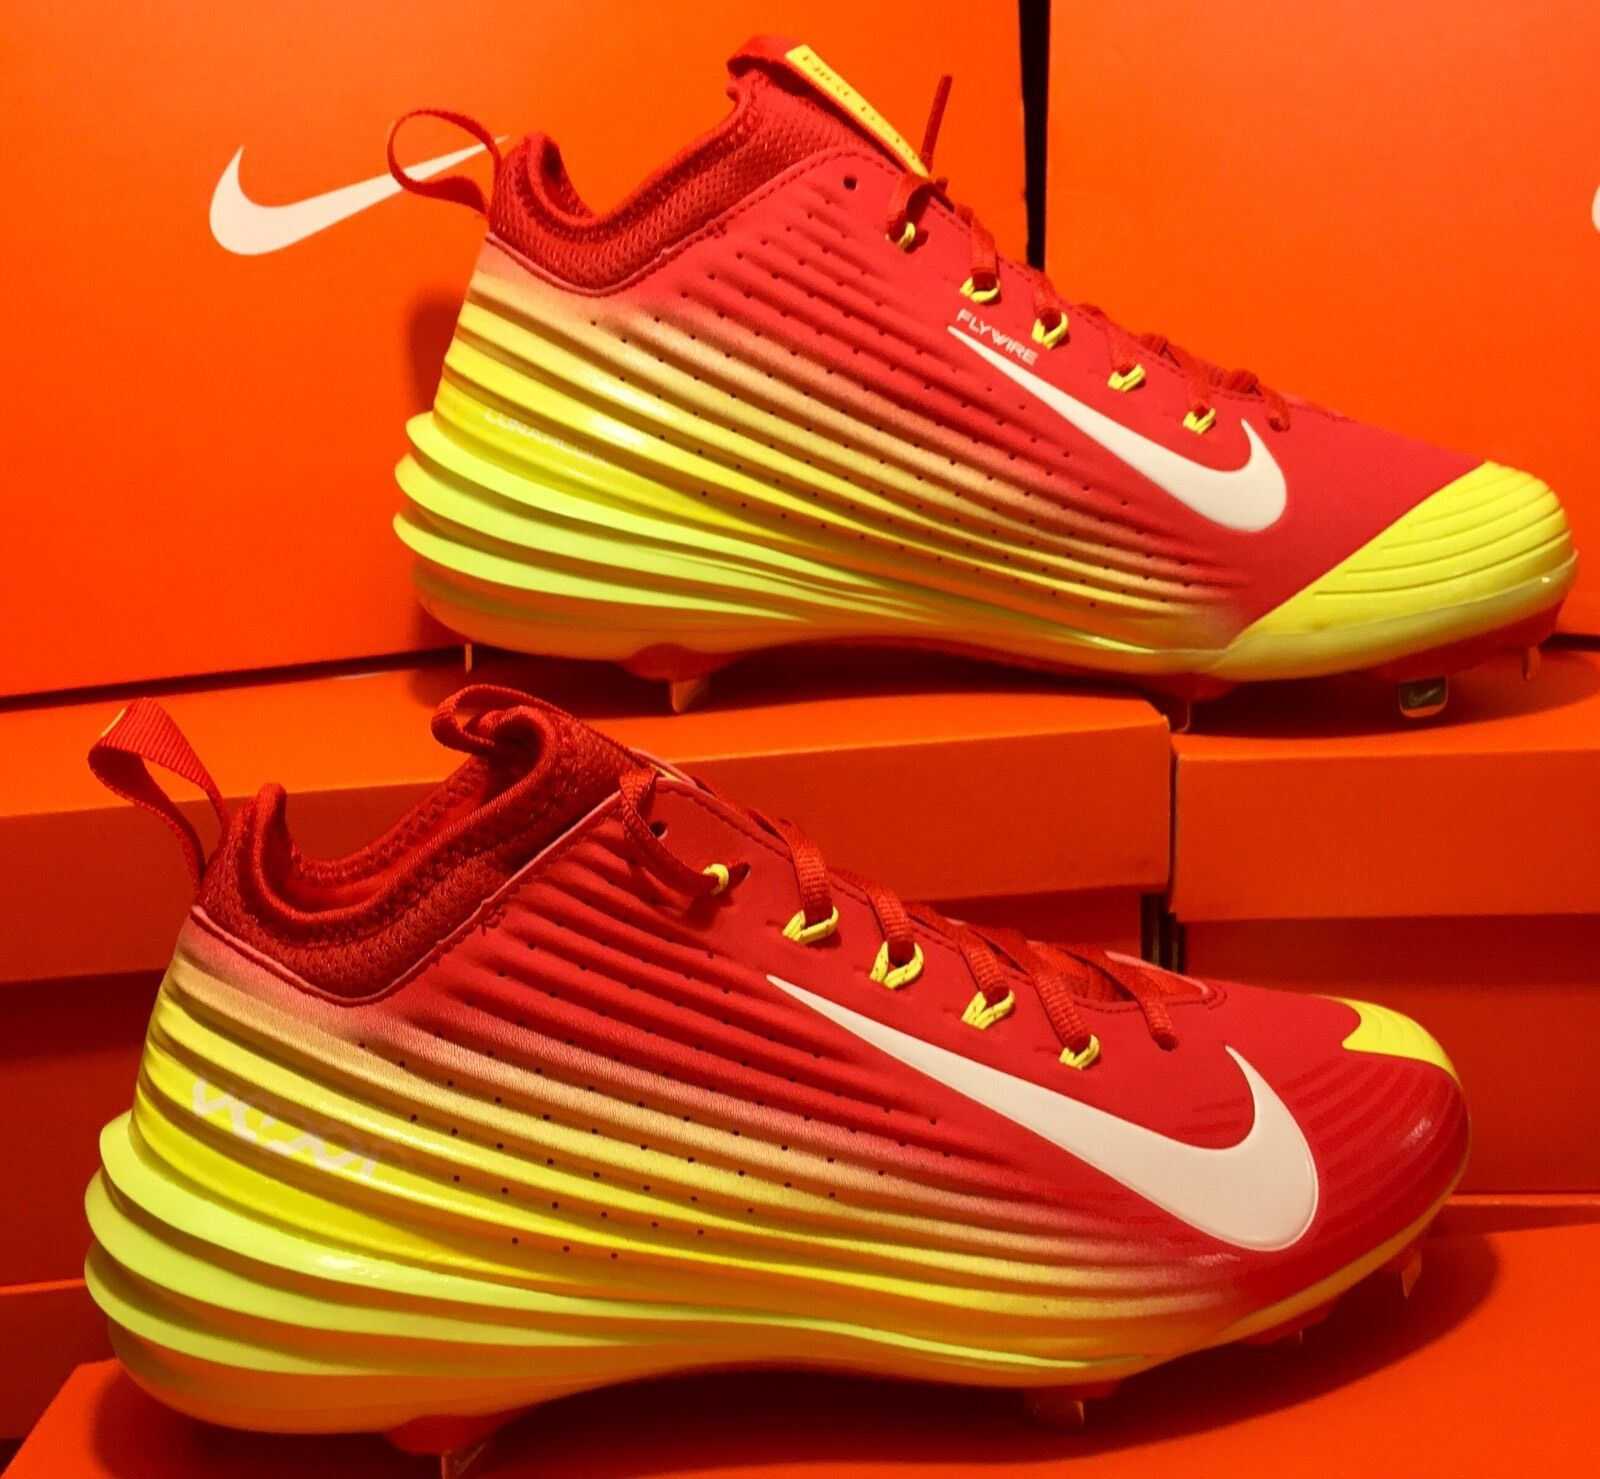 NIKE LUNAR VAPOR TROUT BASEBALL CLEATS RED VOLT WHT SZ 9,10,11.5 FREE SHIPPING